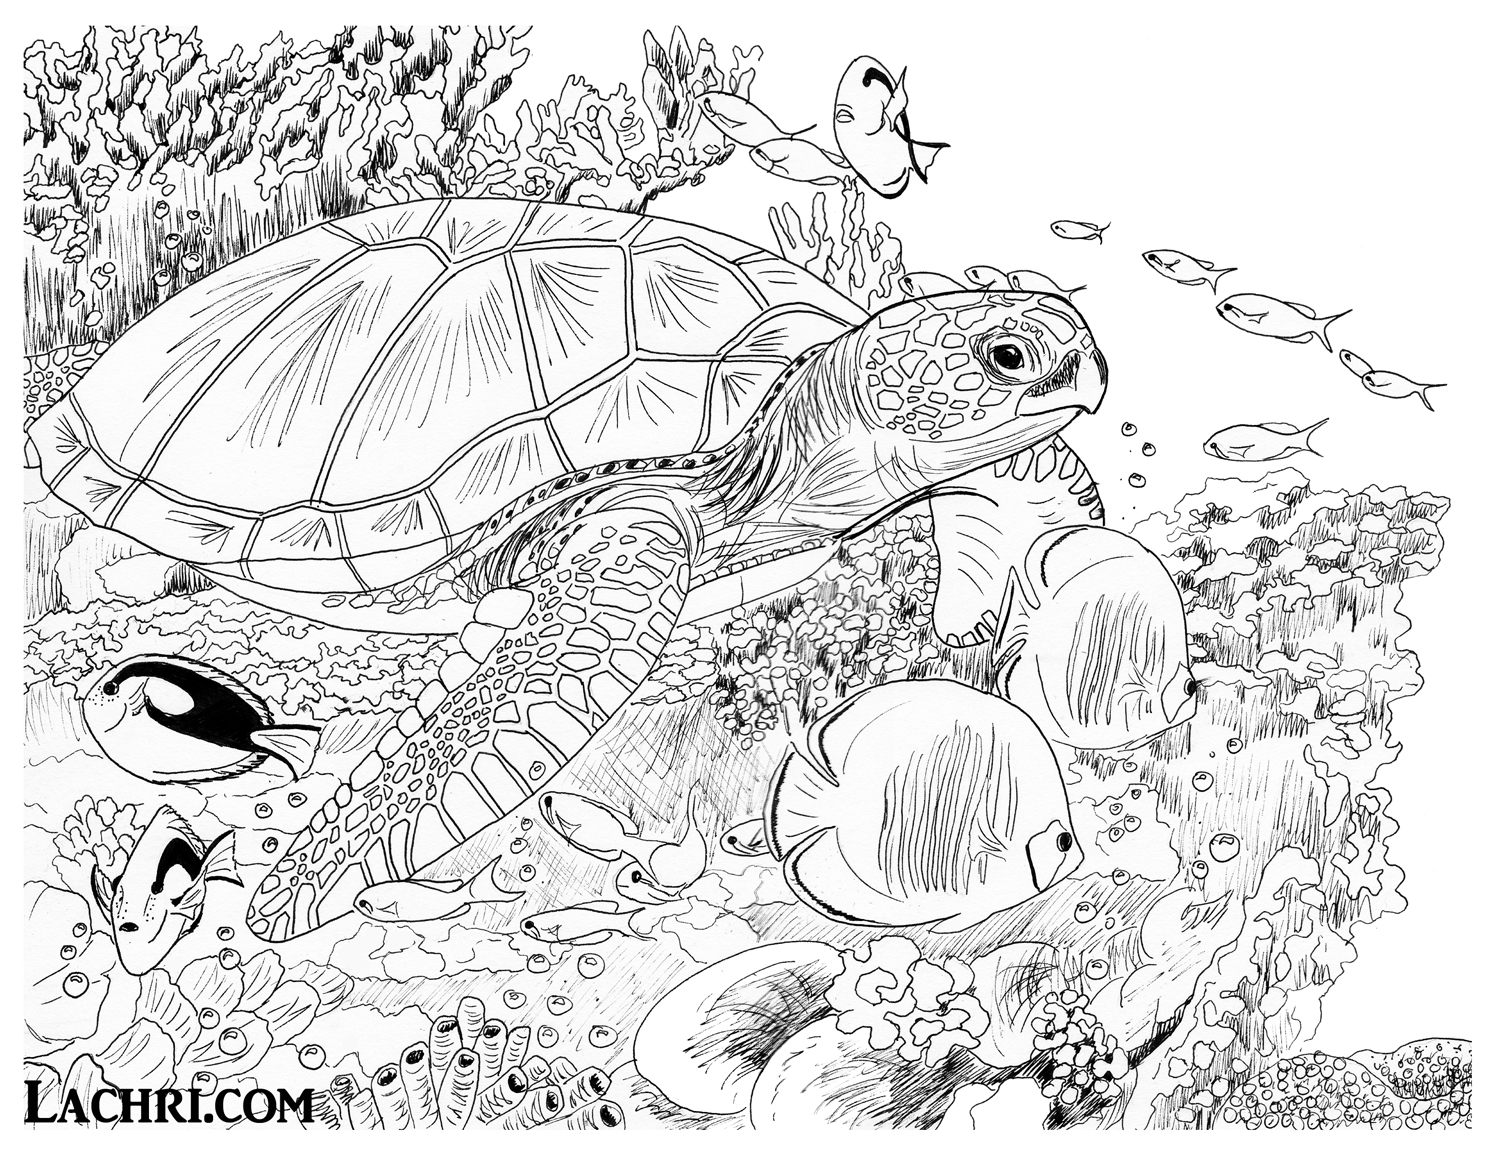 turtle coloring book page the jurney of sea turtle free coloring page download coloring page book turtle